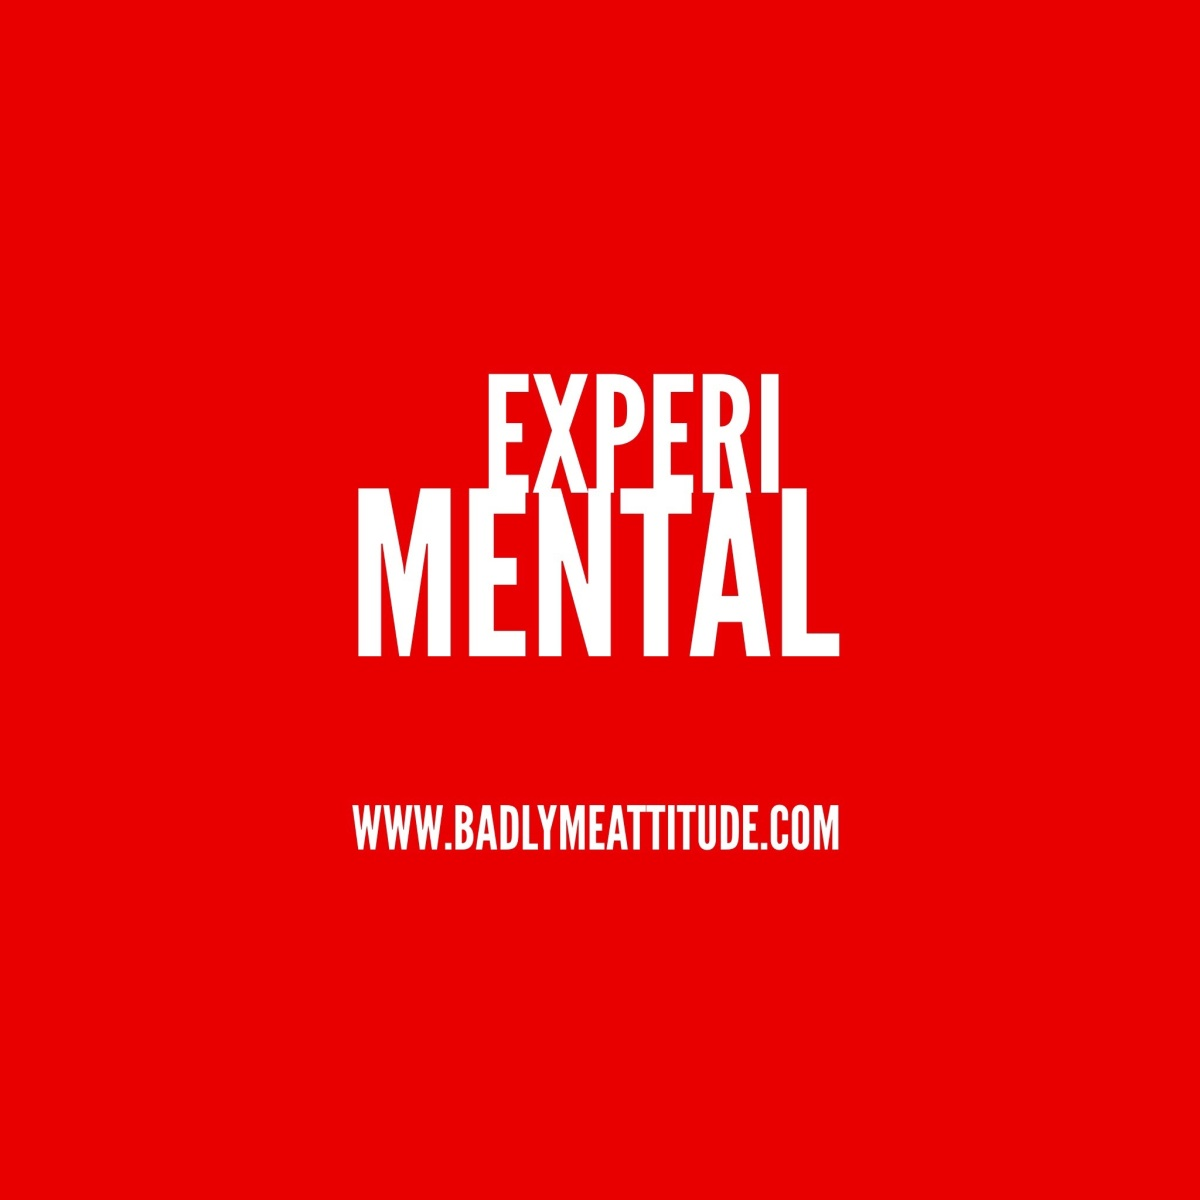 You Can't Spell Experimental Without Mental